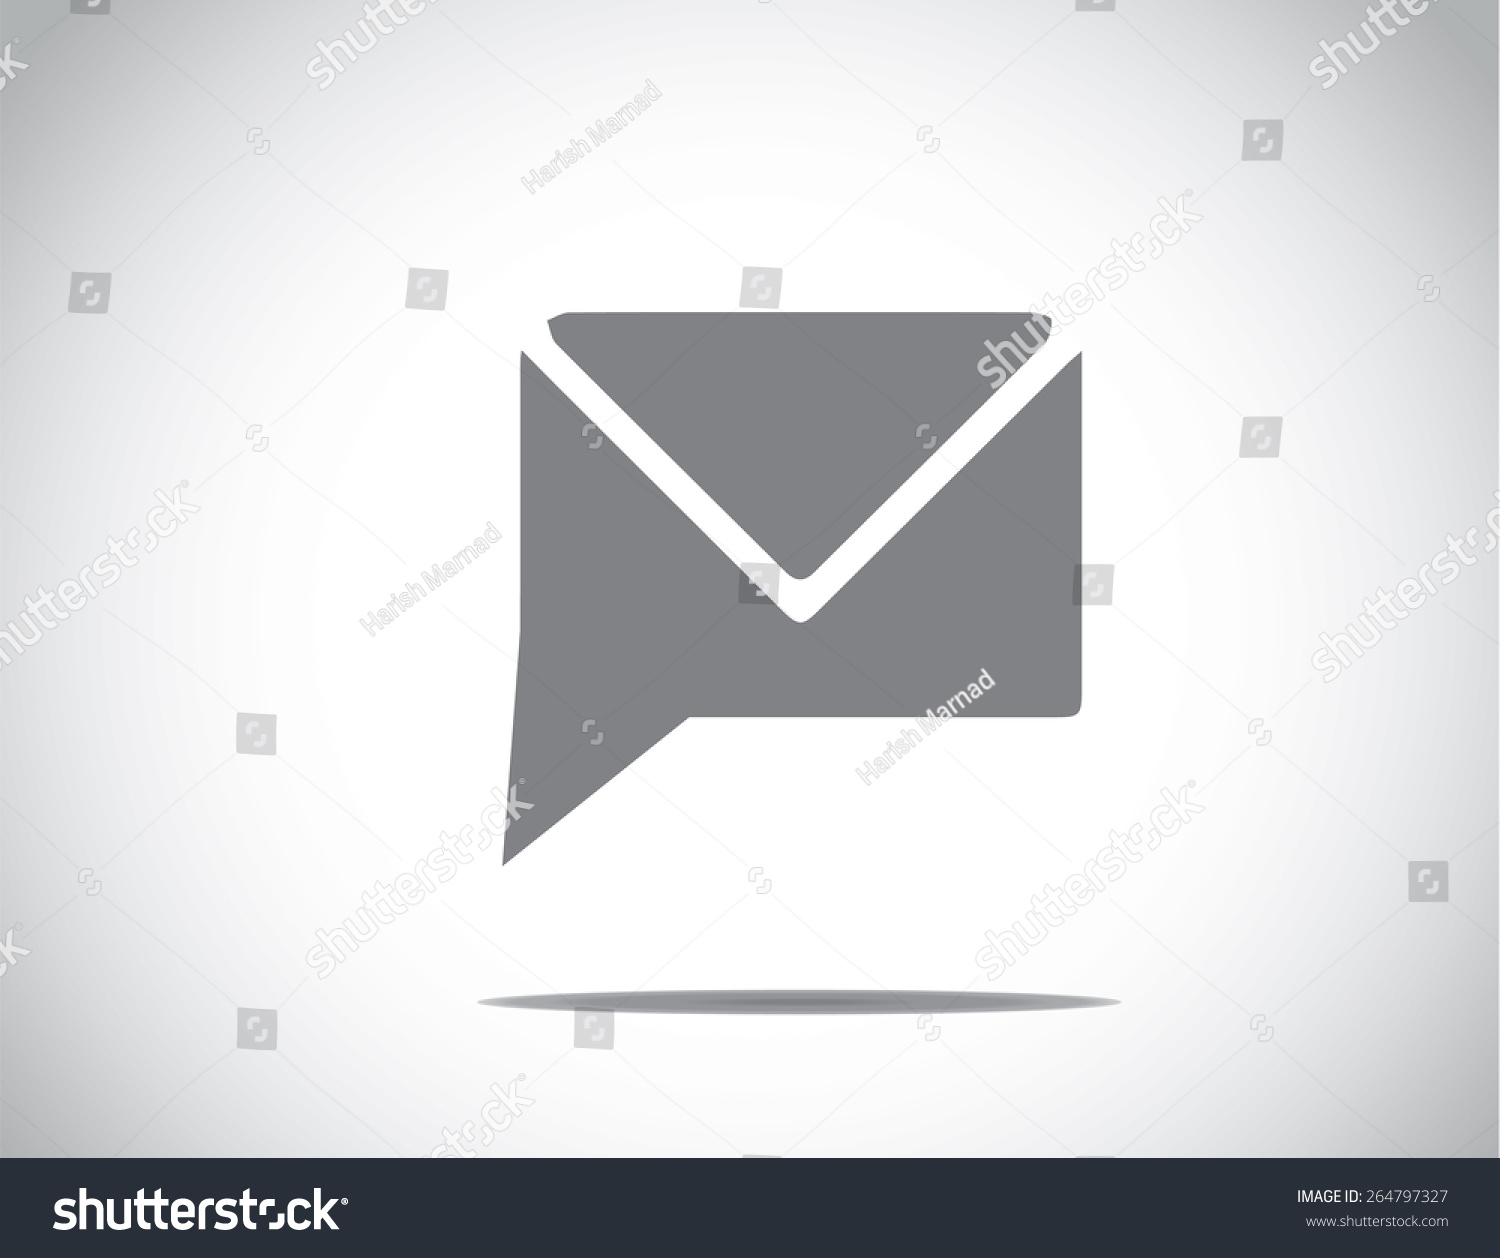 Email background image - Unique Simple Chat Or Messenger Email Client Icon Symbol With Bright White Background Social Media